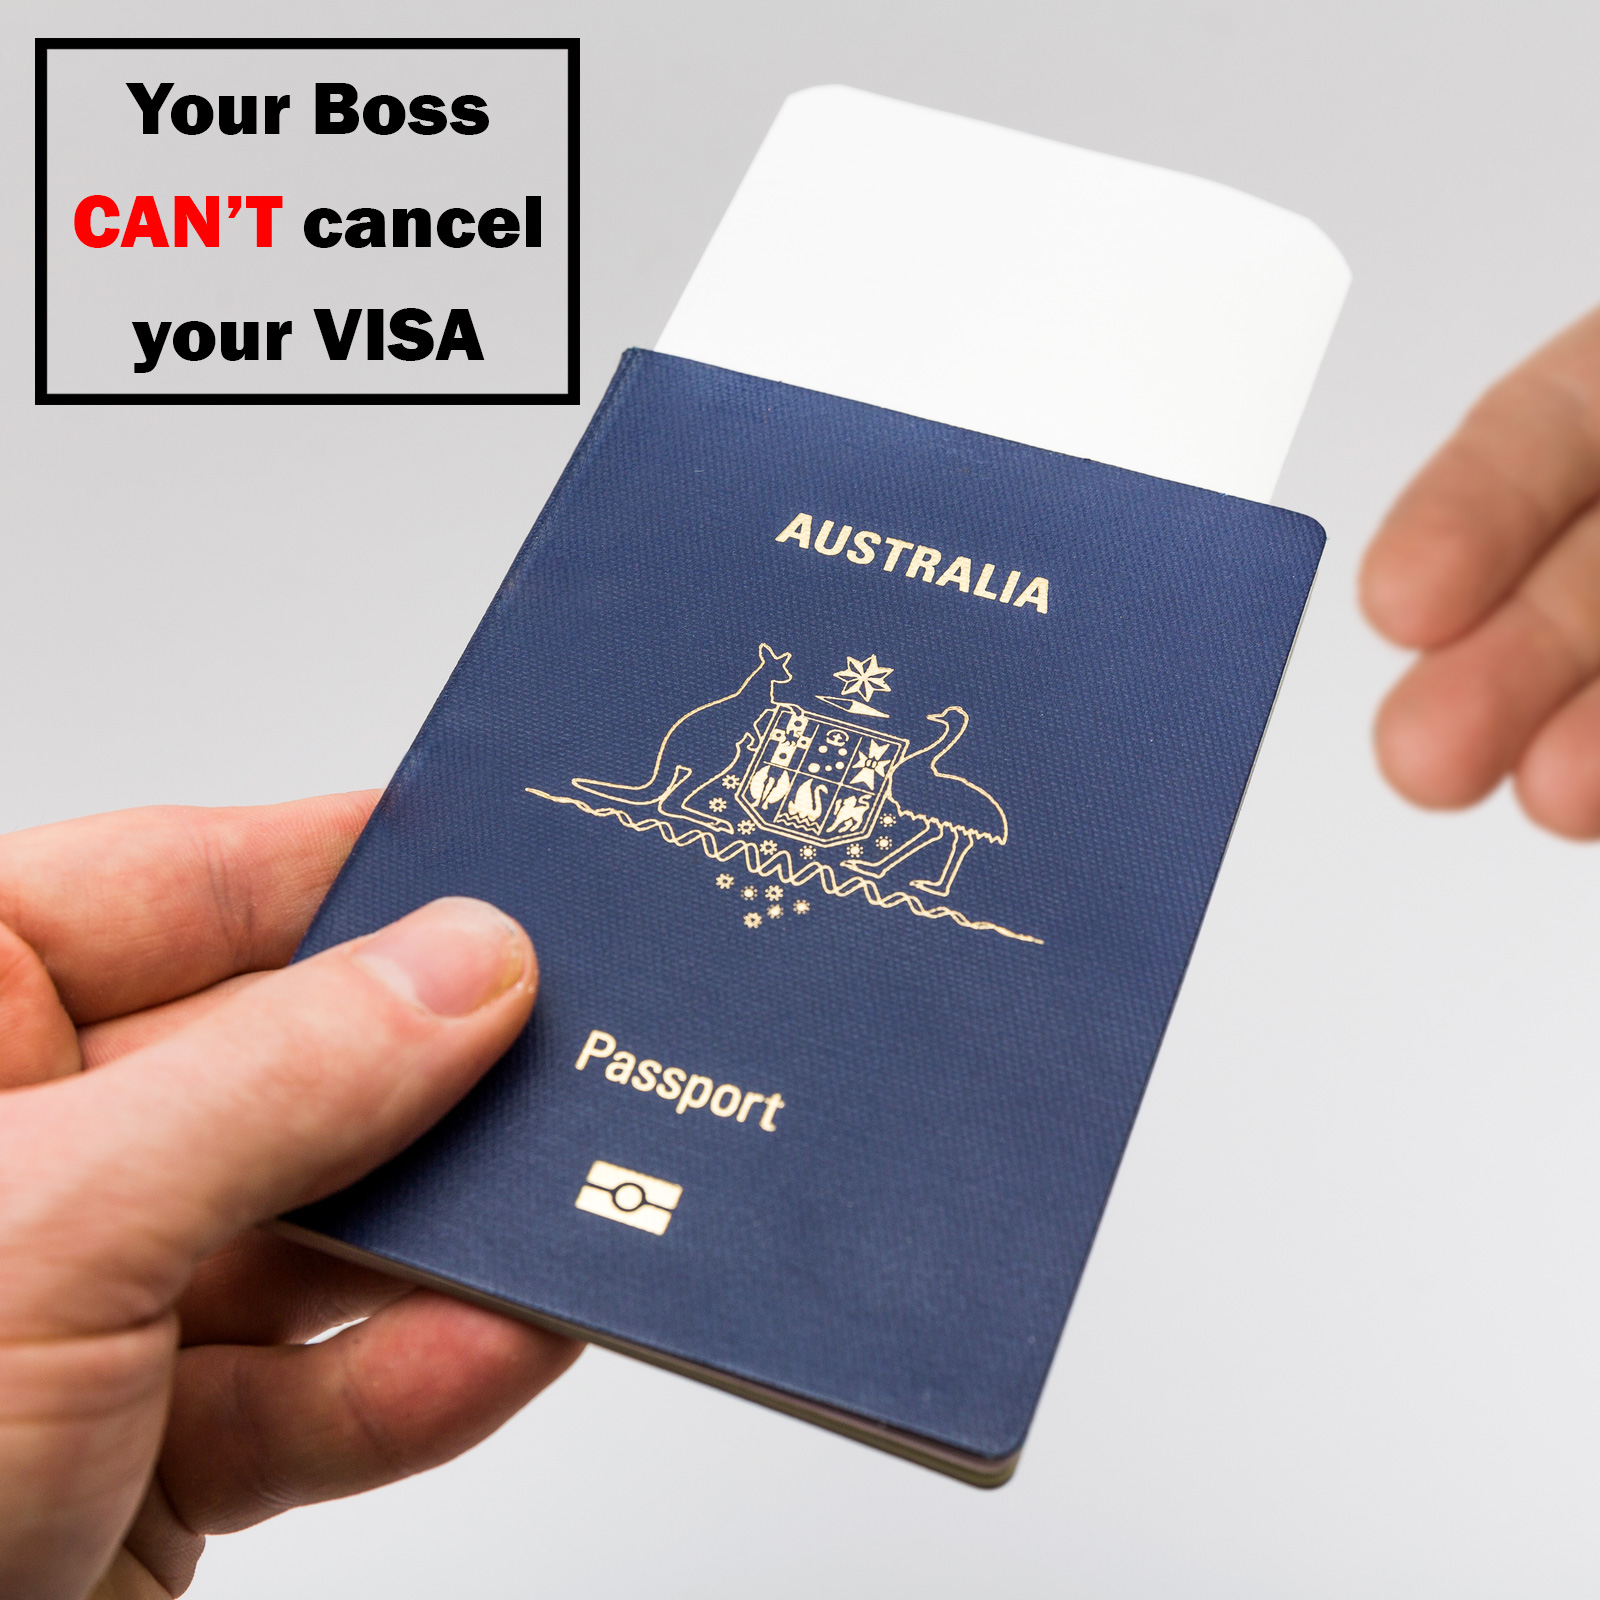 your employer can't cancel your visa